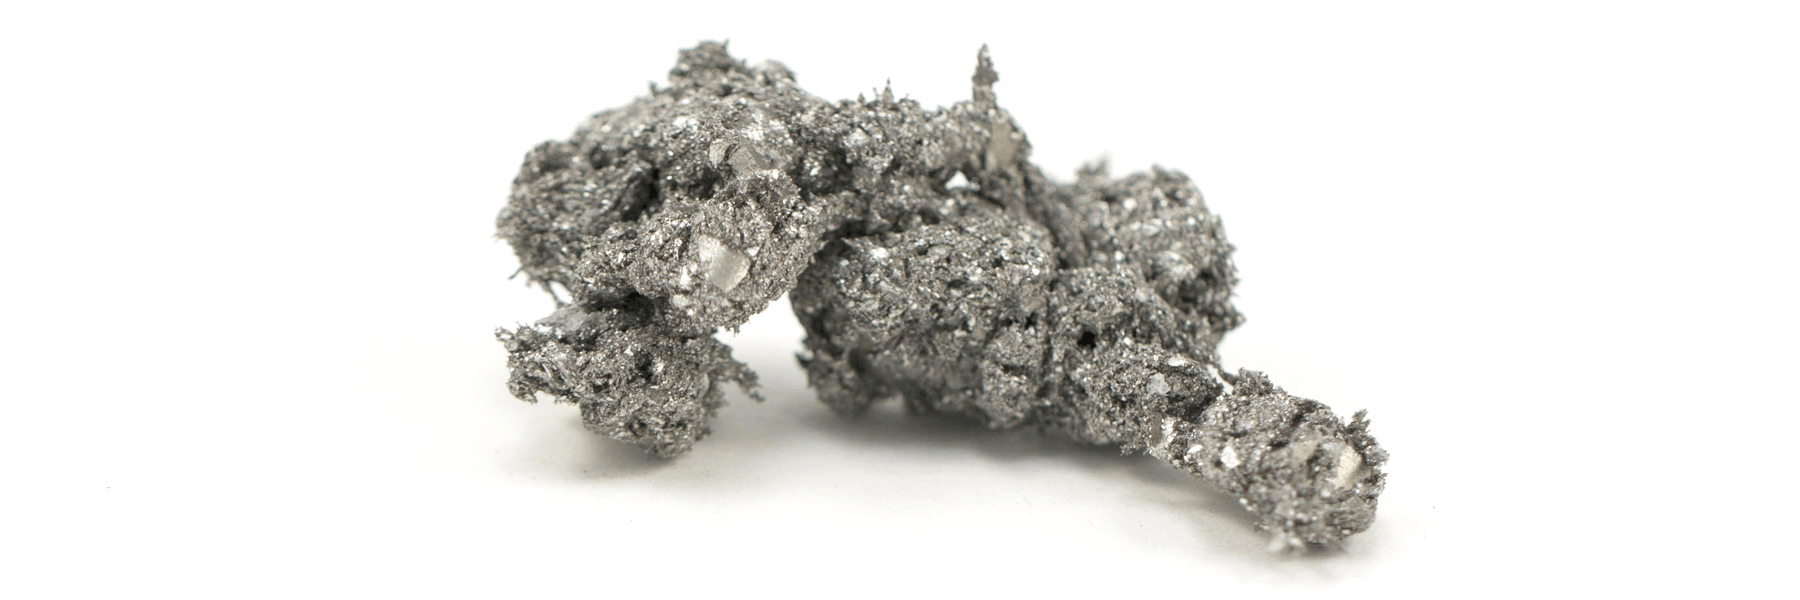 Samarium Cobalt as a raw material